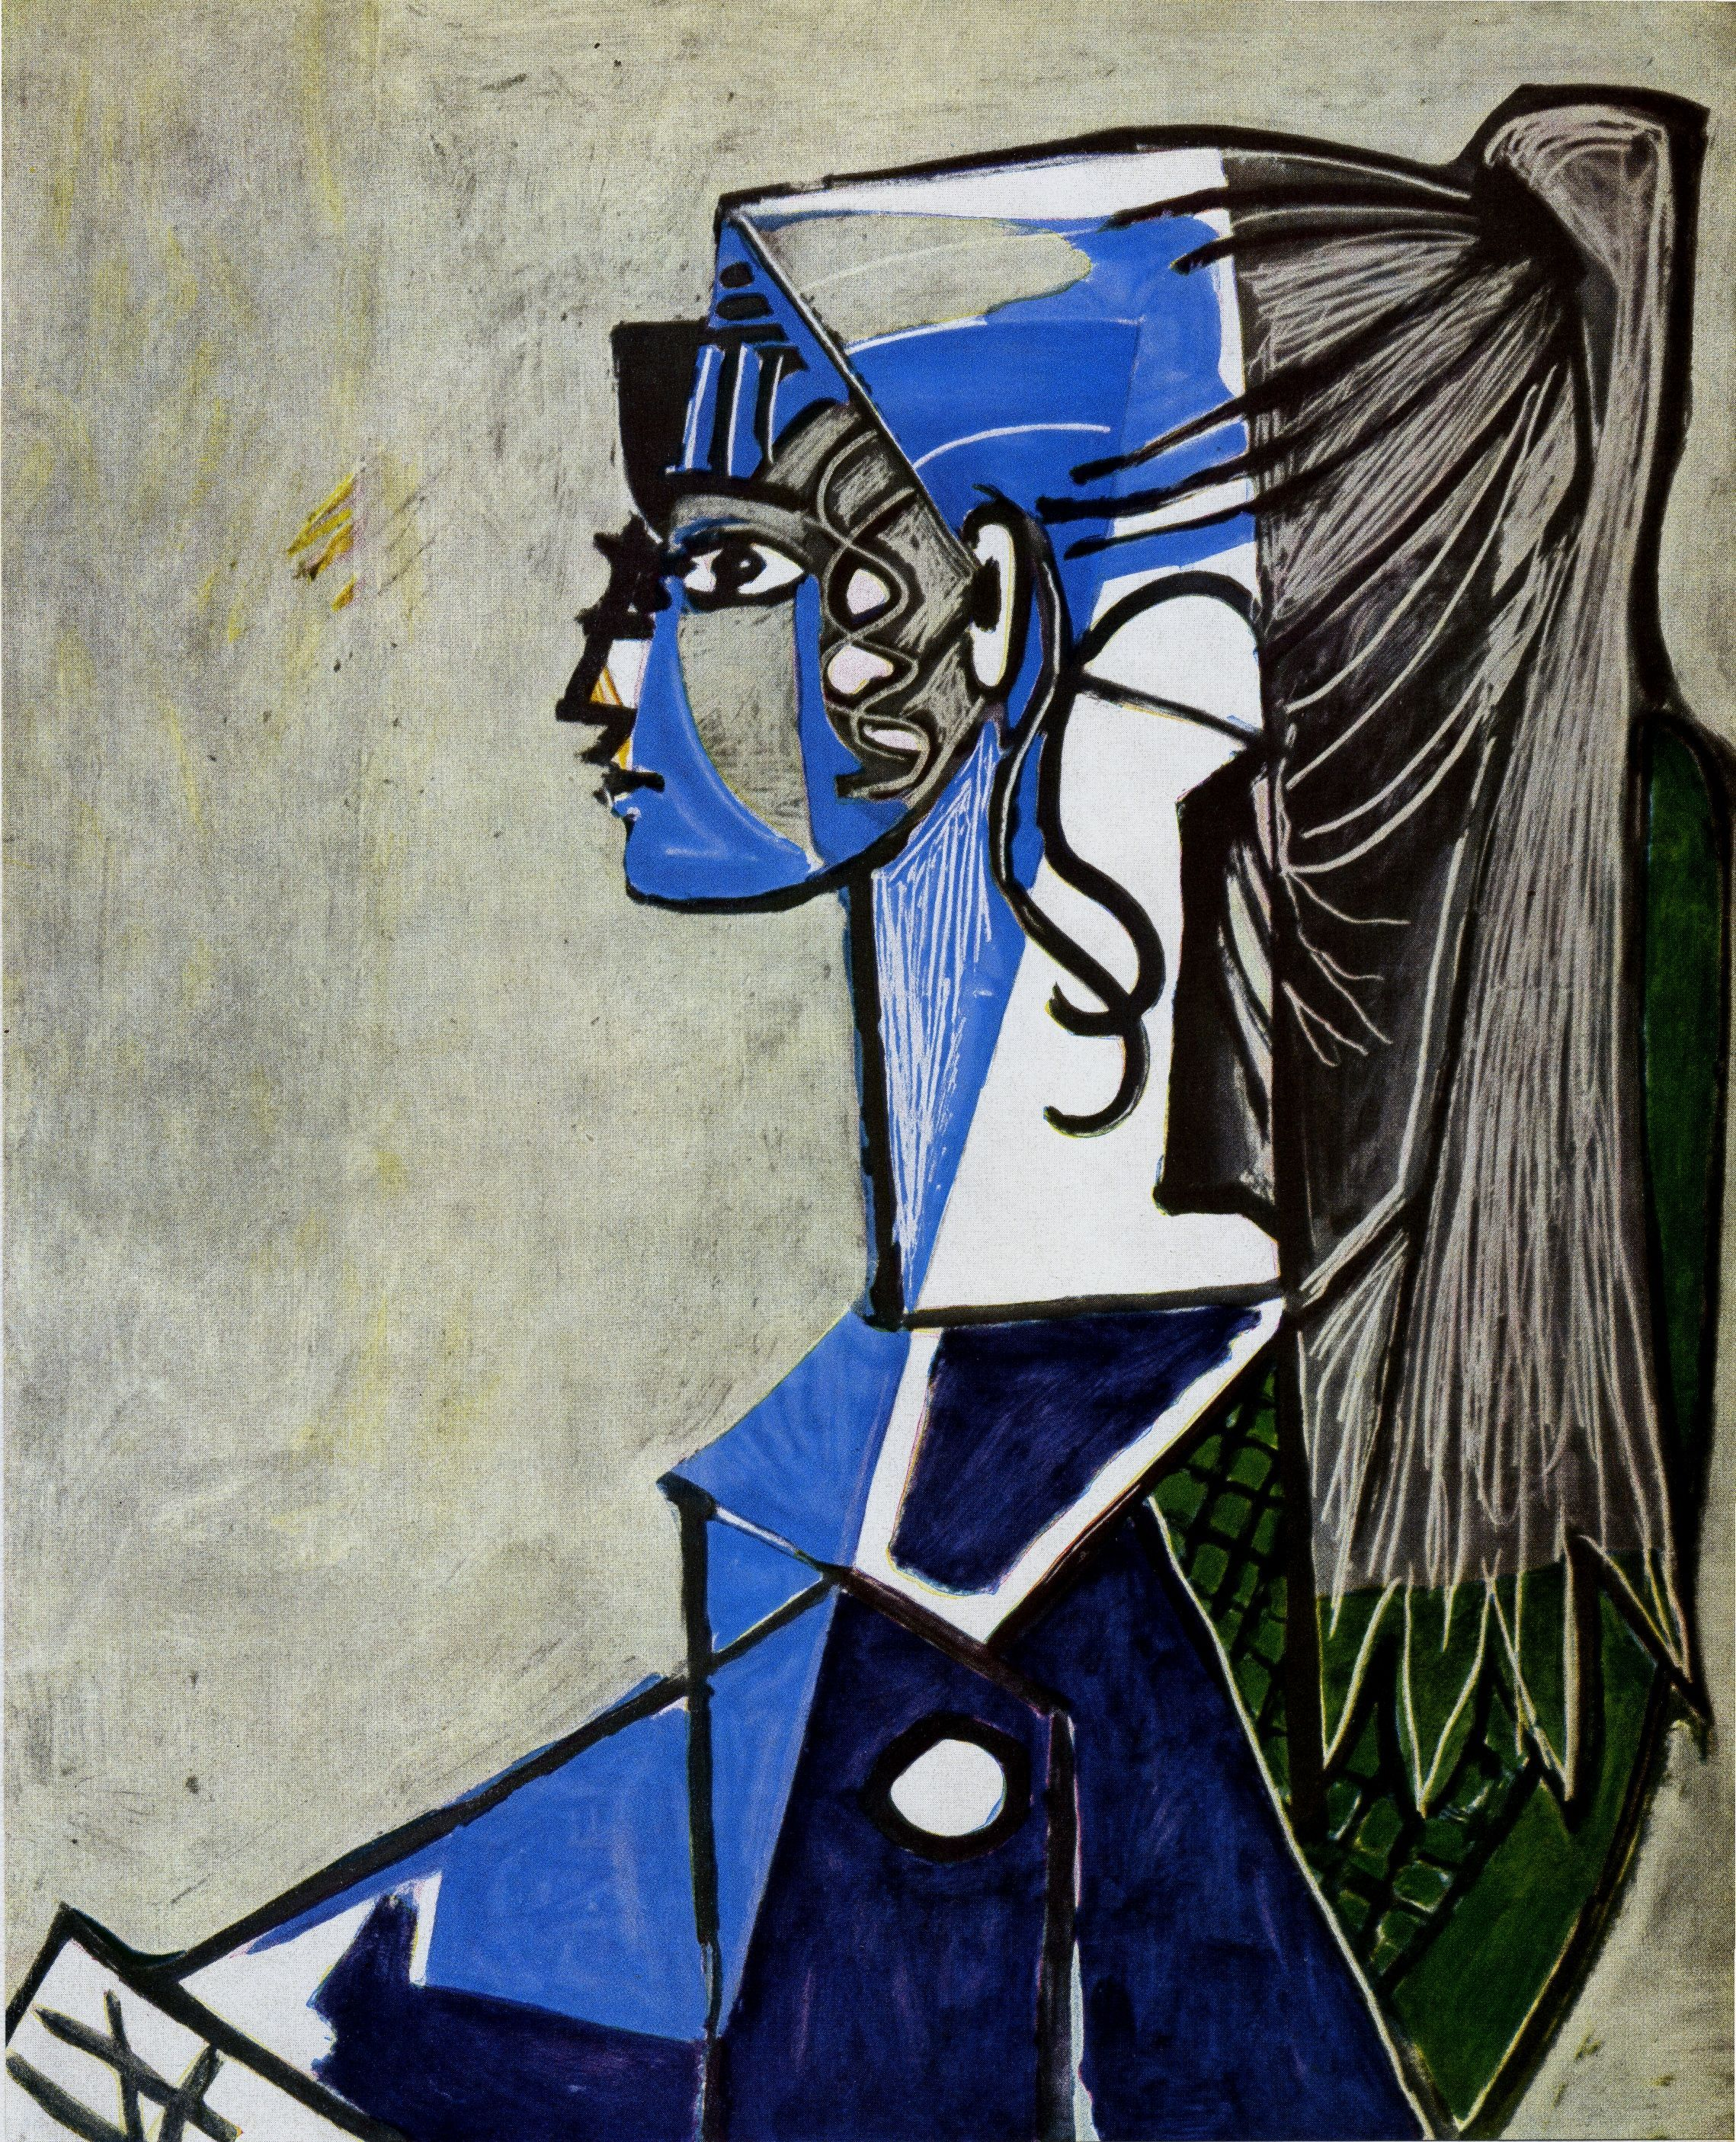 picasso paintings pablo picasso paintings pictures photos picasso paintings pinterest. Black Bedroom Furniture Sets. Home Design Ideas